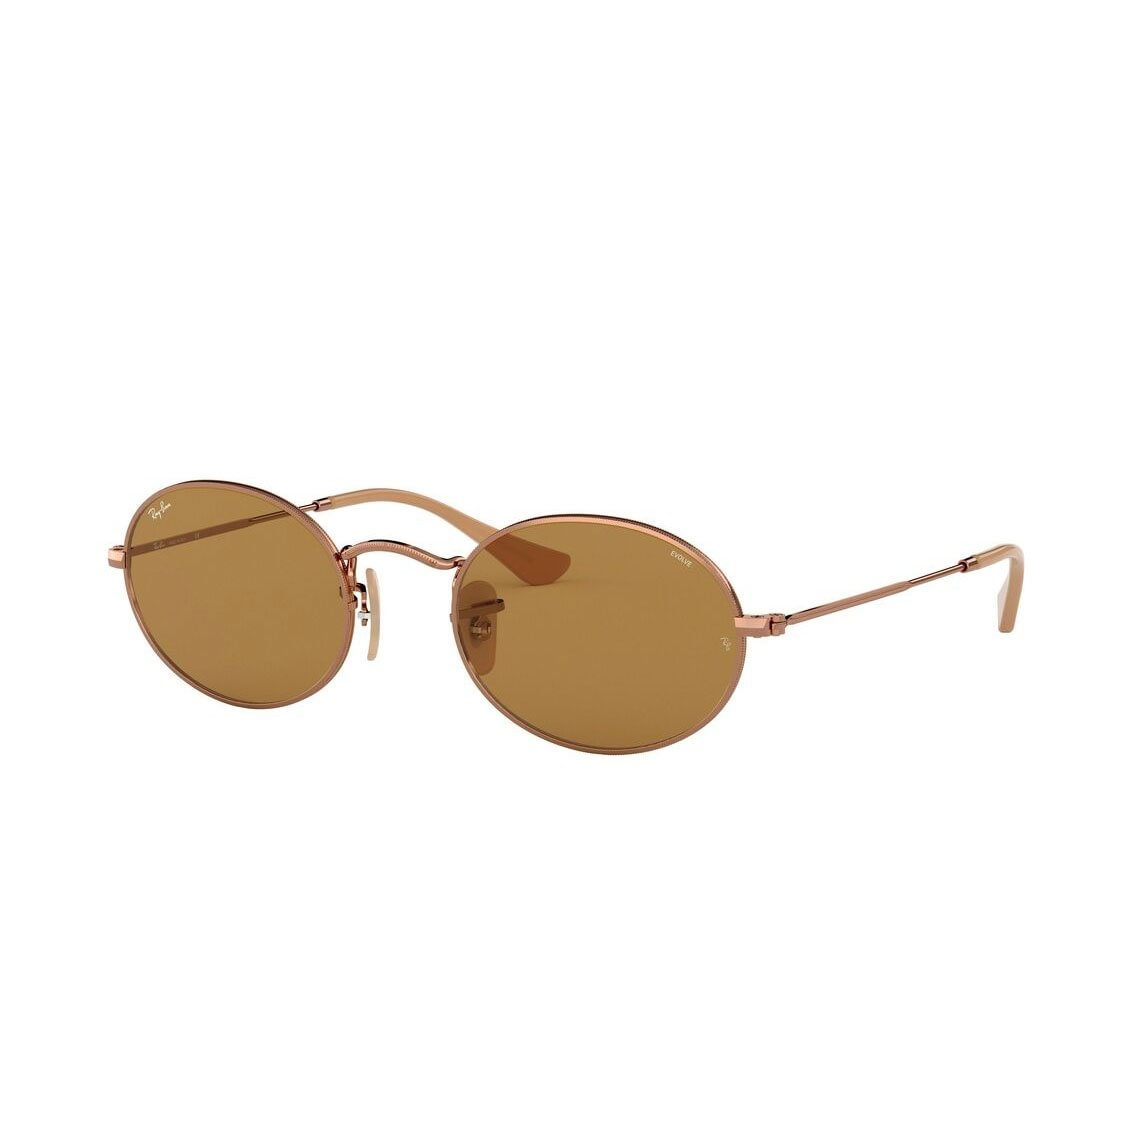 Ray-Ban Oval Washed Evolve RB3547N 91314I 5121